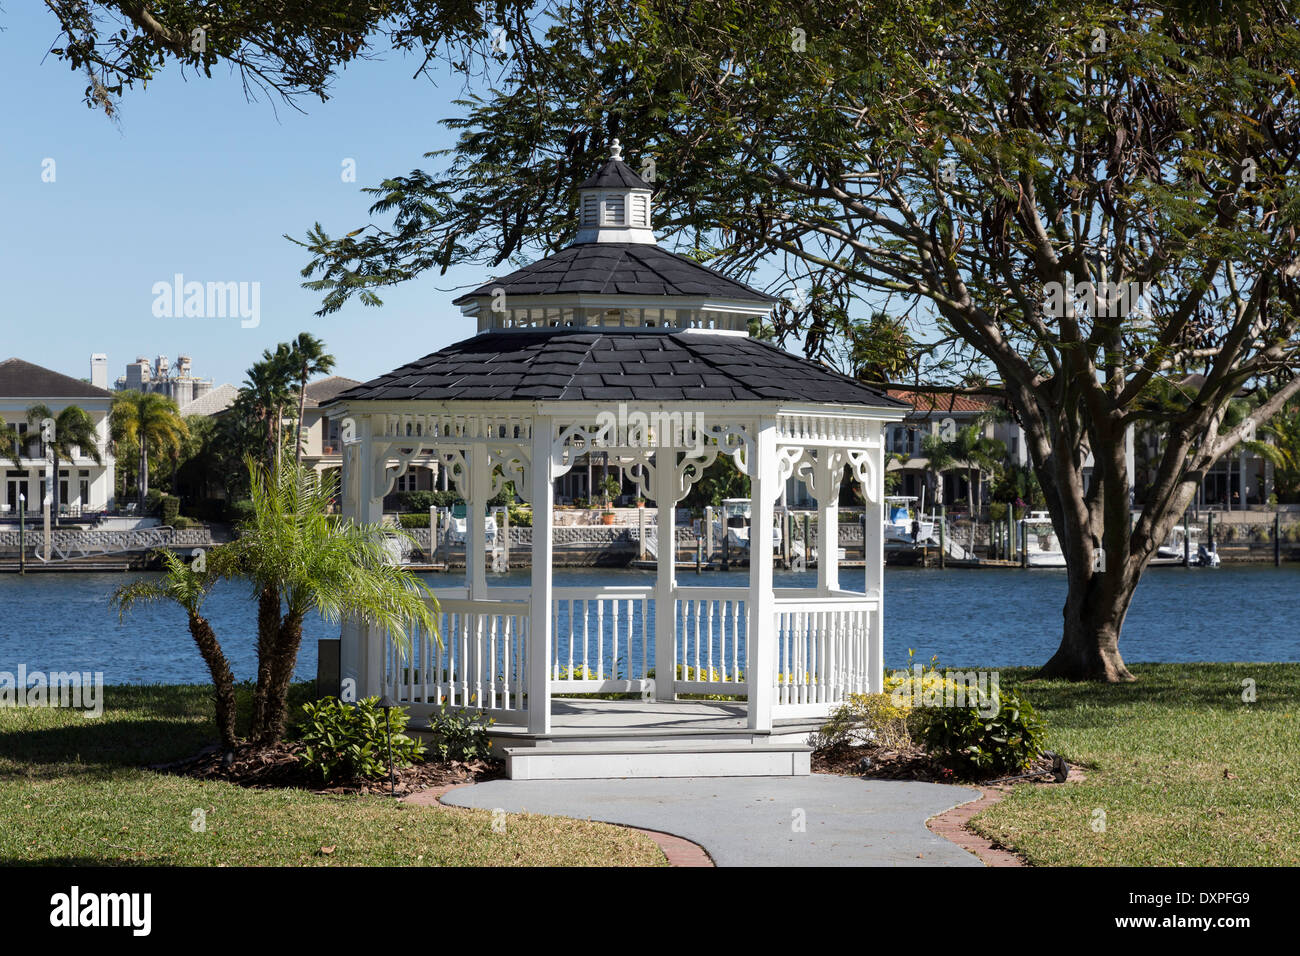 davis islands garden club gazebo tampa fl stock image - Davis Island Garden Club